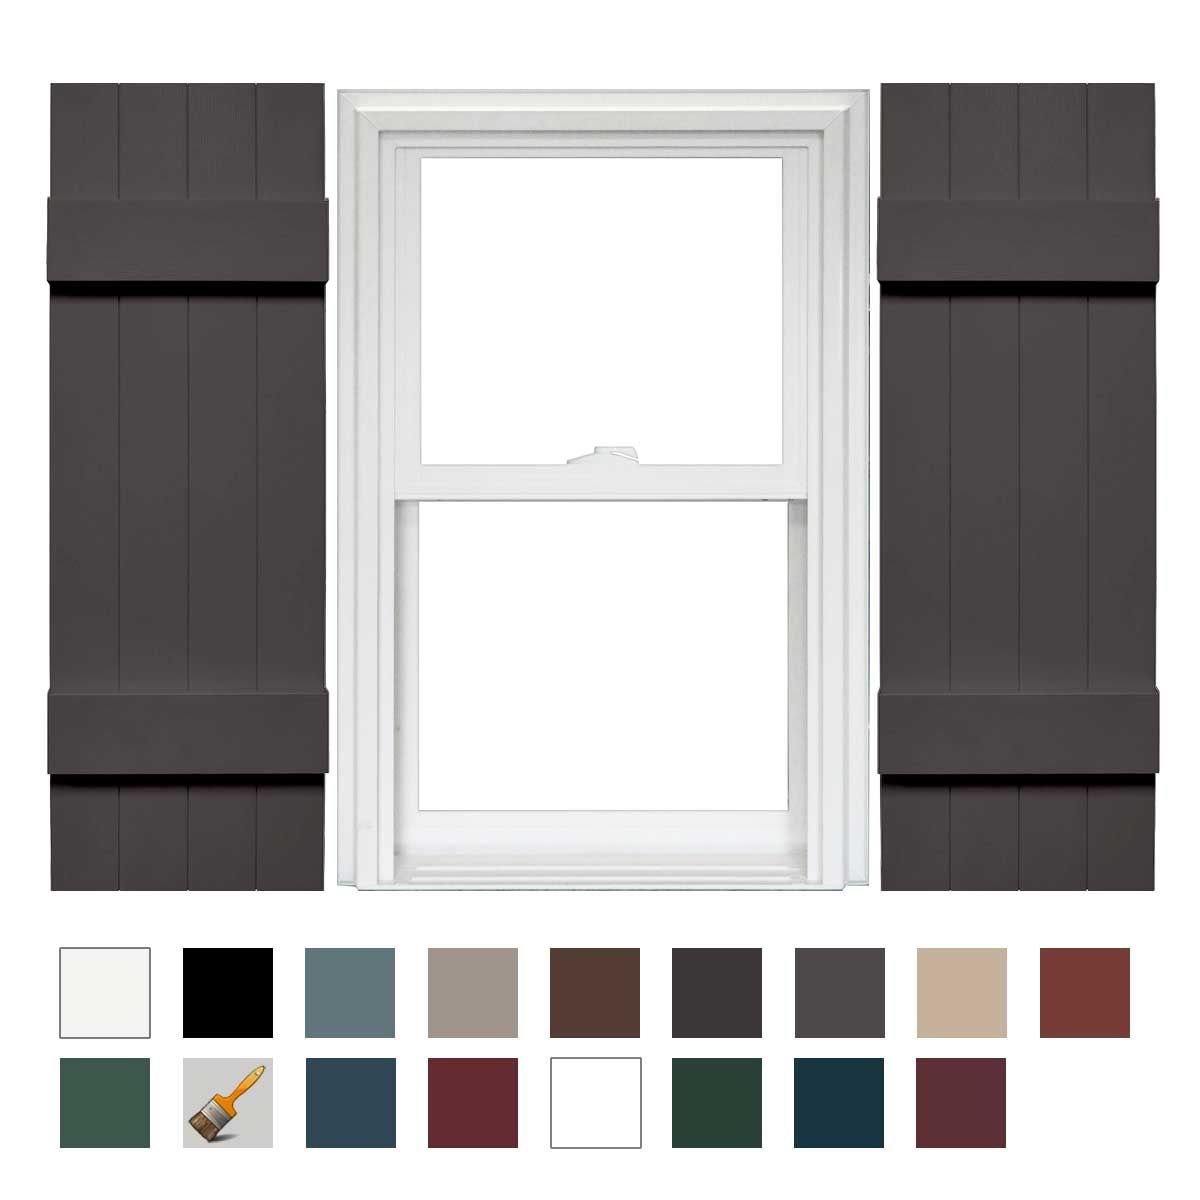 Mid America 4 Board And Batten Joined Vinyl Shutters 1 Pair 14 X 31 018 Tuxedo Gray Vinyl Shutters Board And Batten Shutters Mid America Shutters